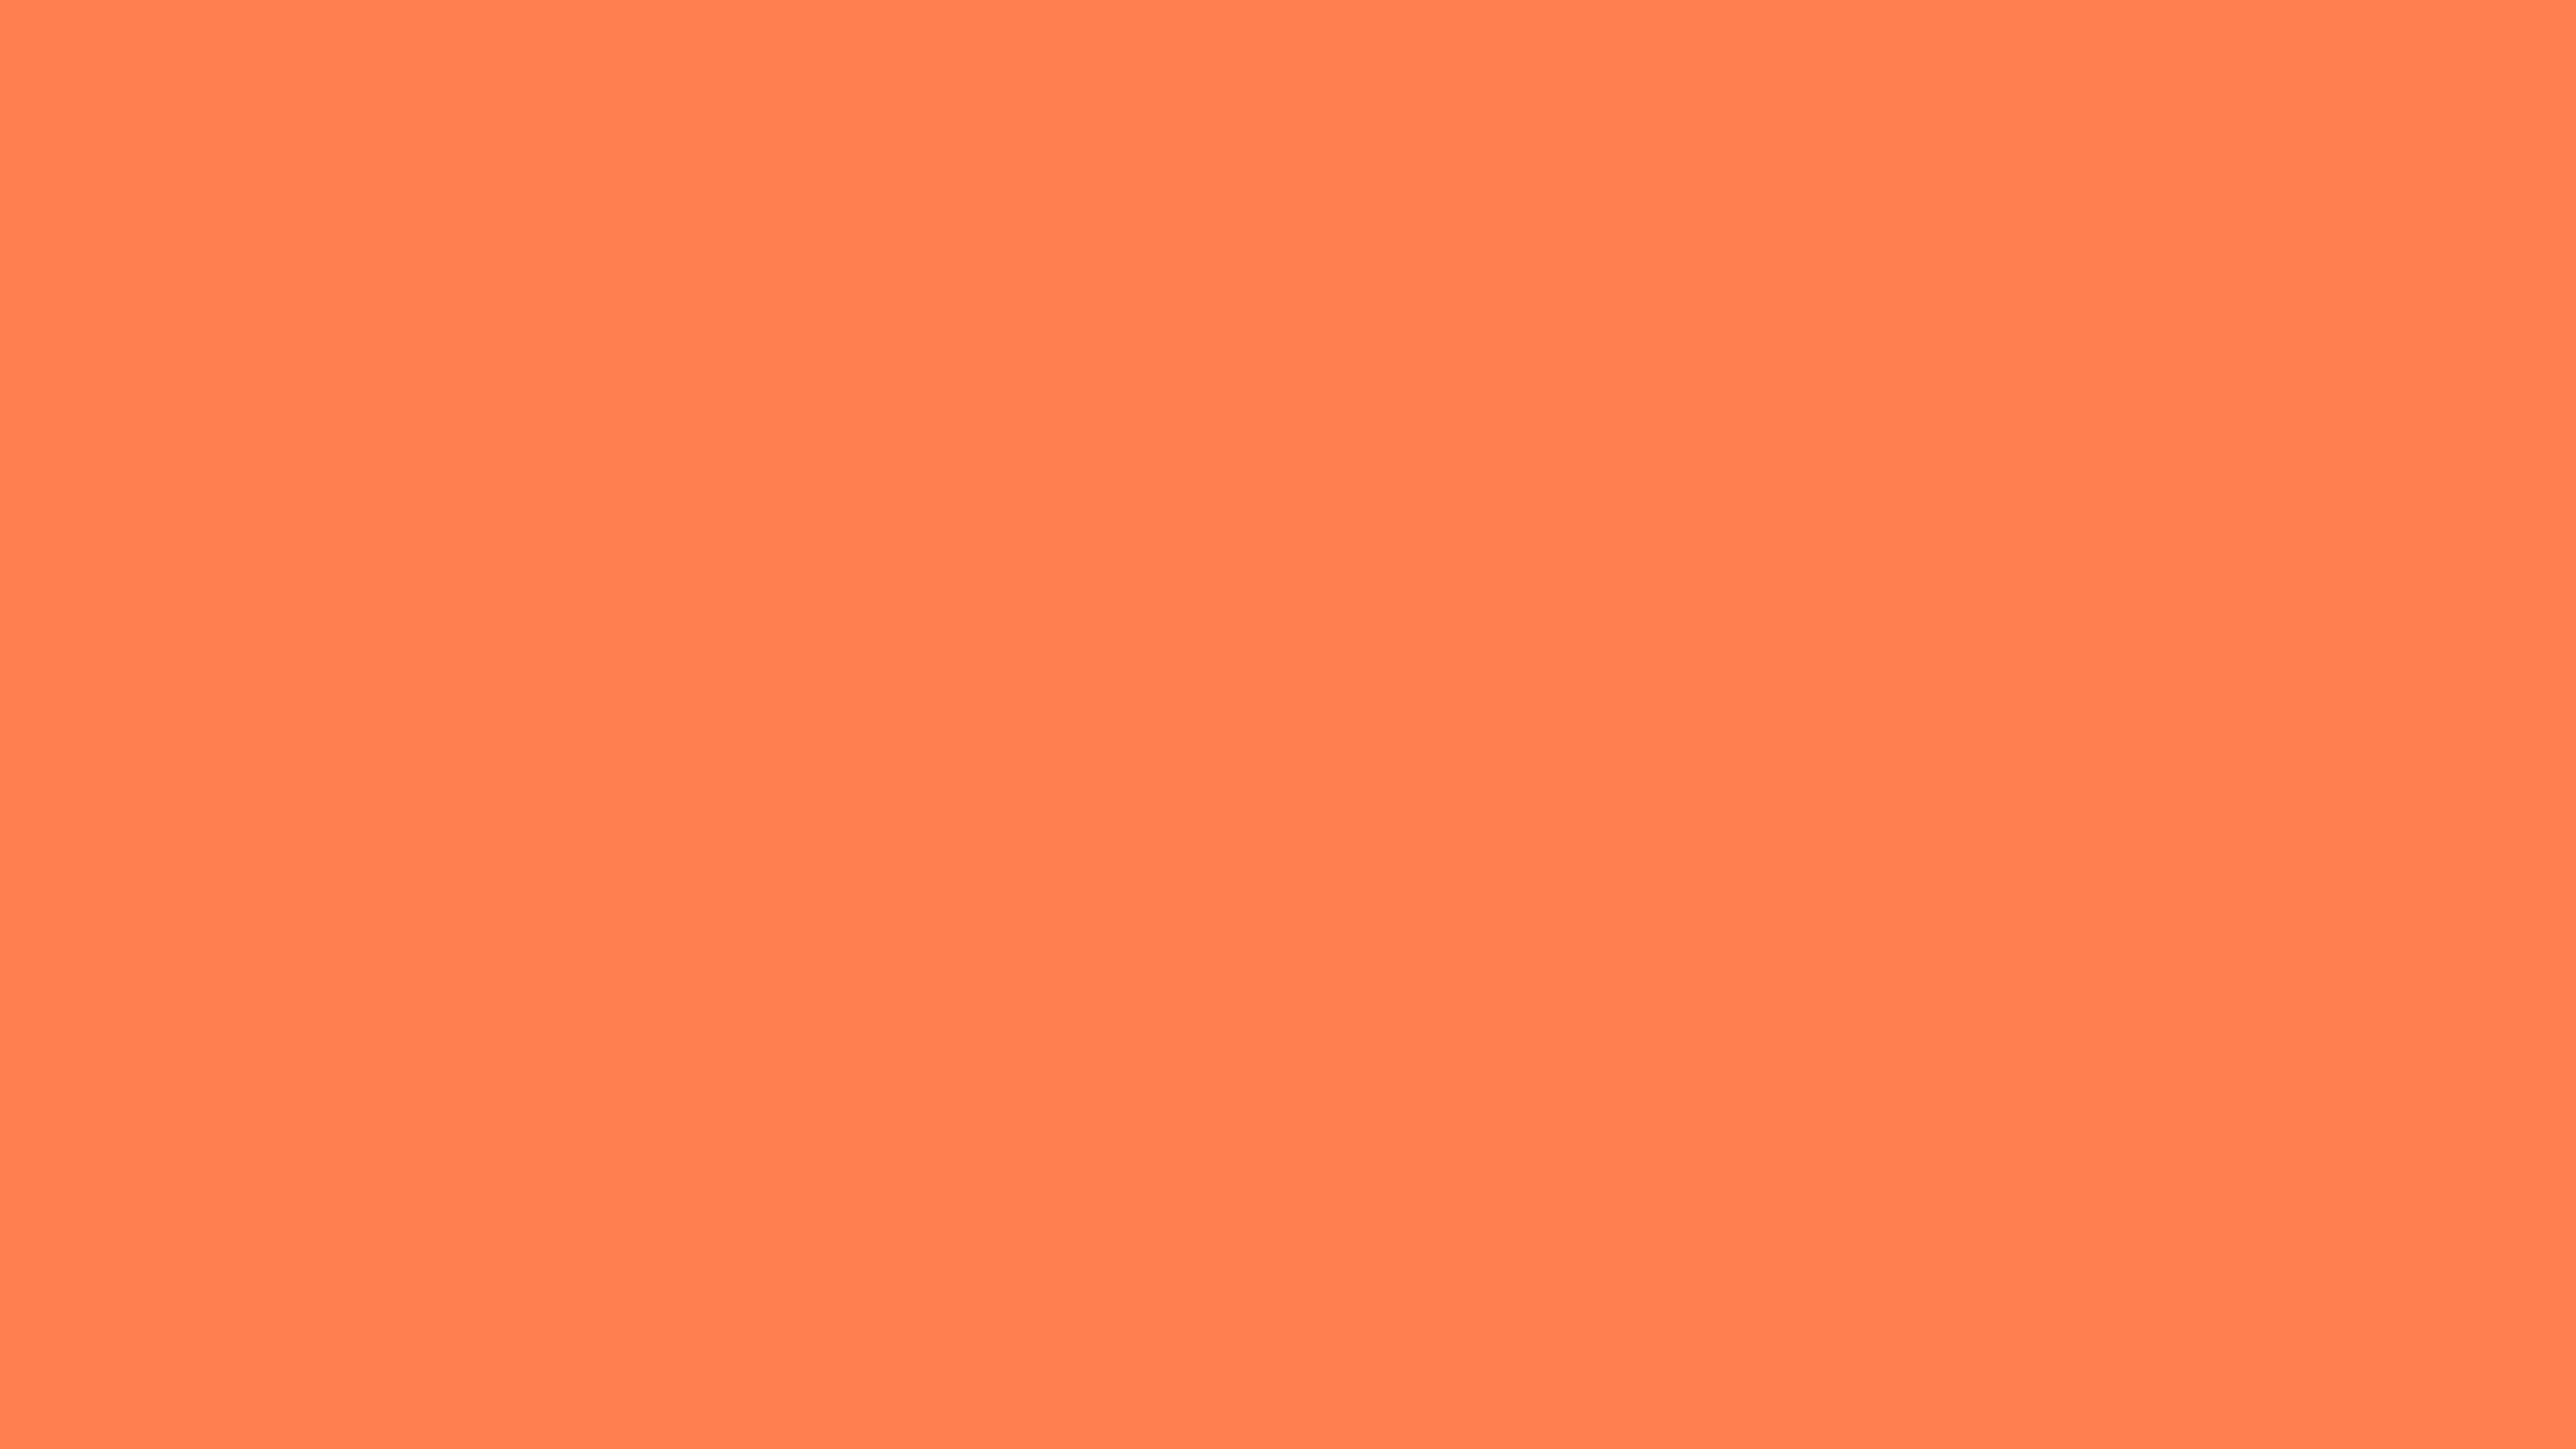 7680x4320 Coral Solid Color Background